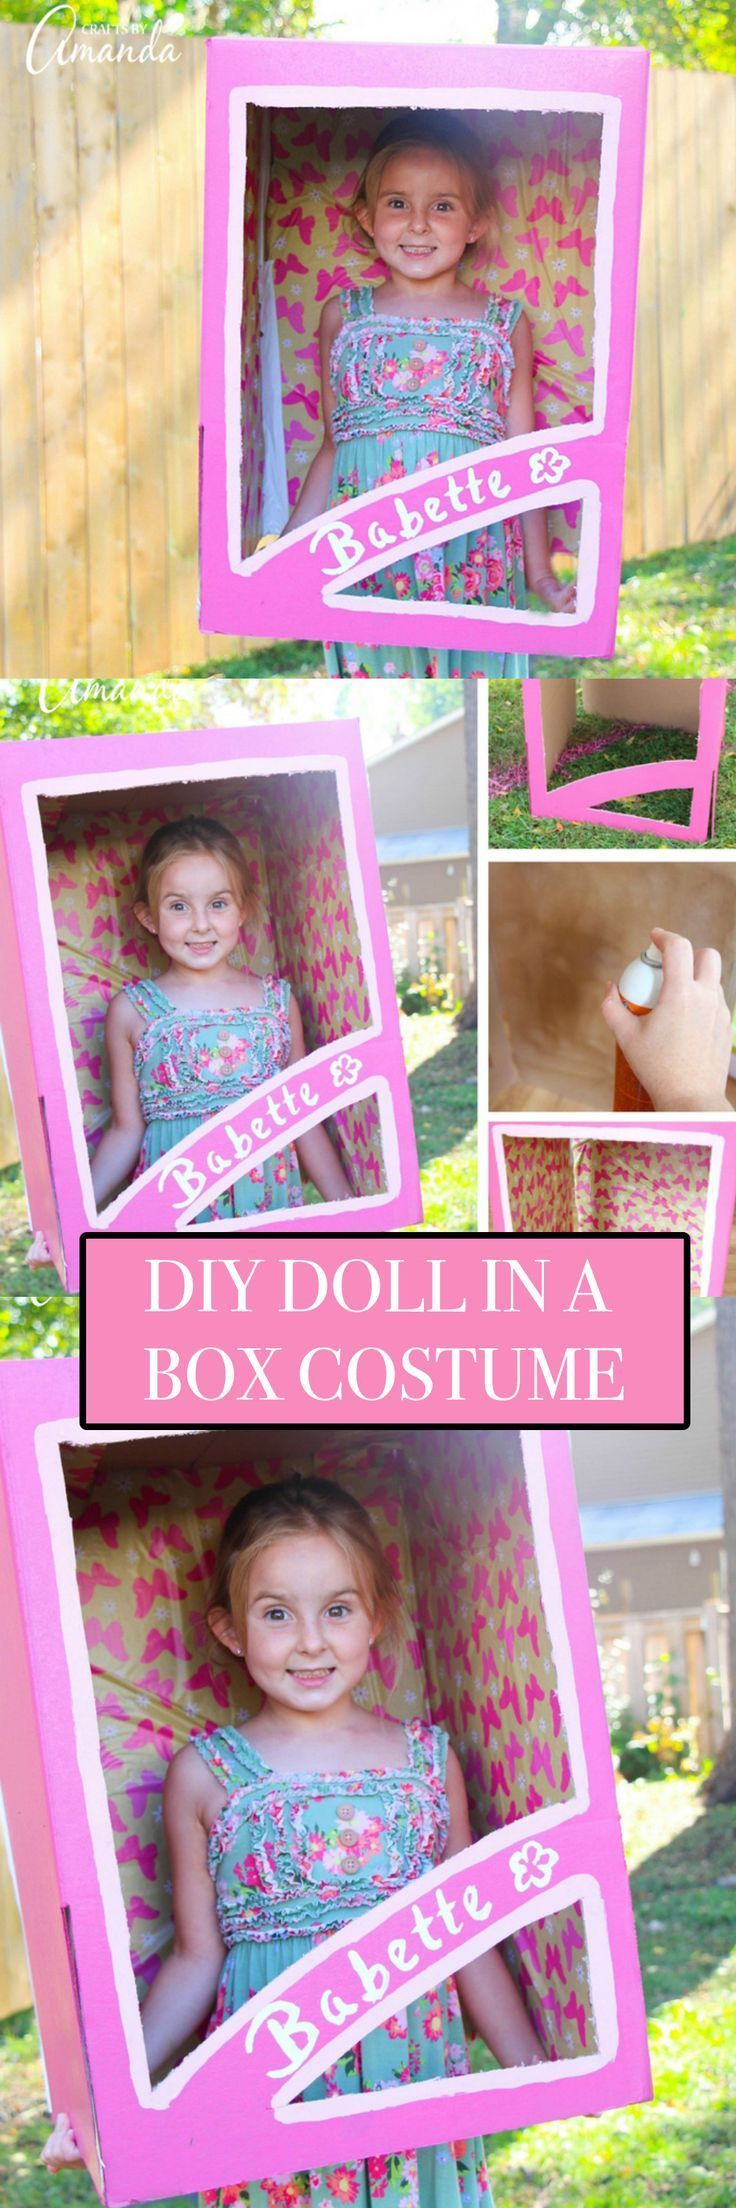 Make yourself or your little girl a doll in a box costume that's perfect for Halloween or great to use as a photo prop for a little girl's birthday party!